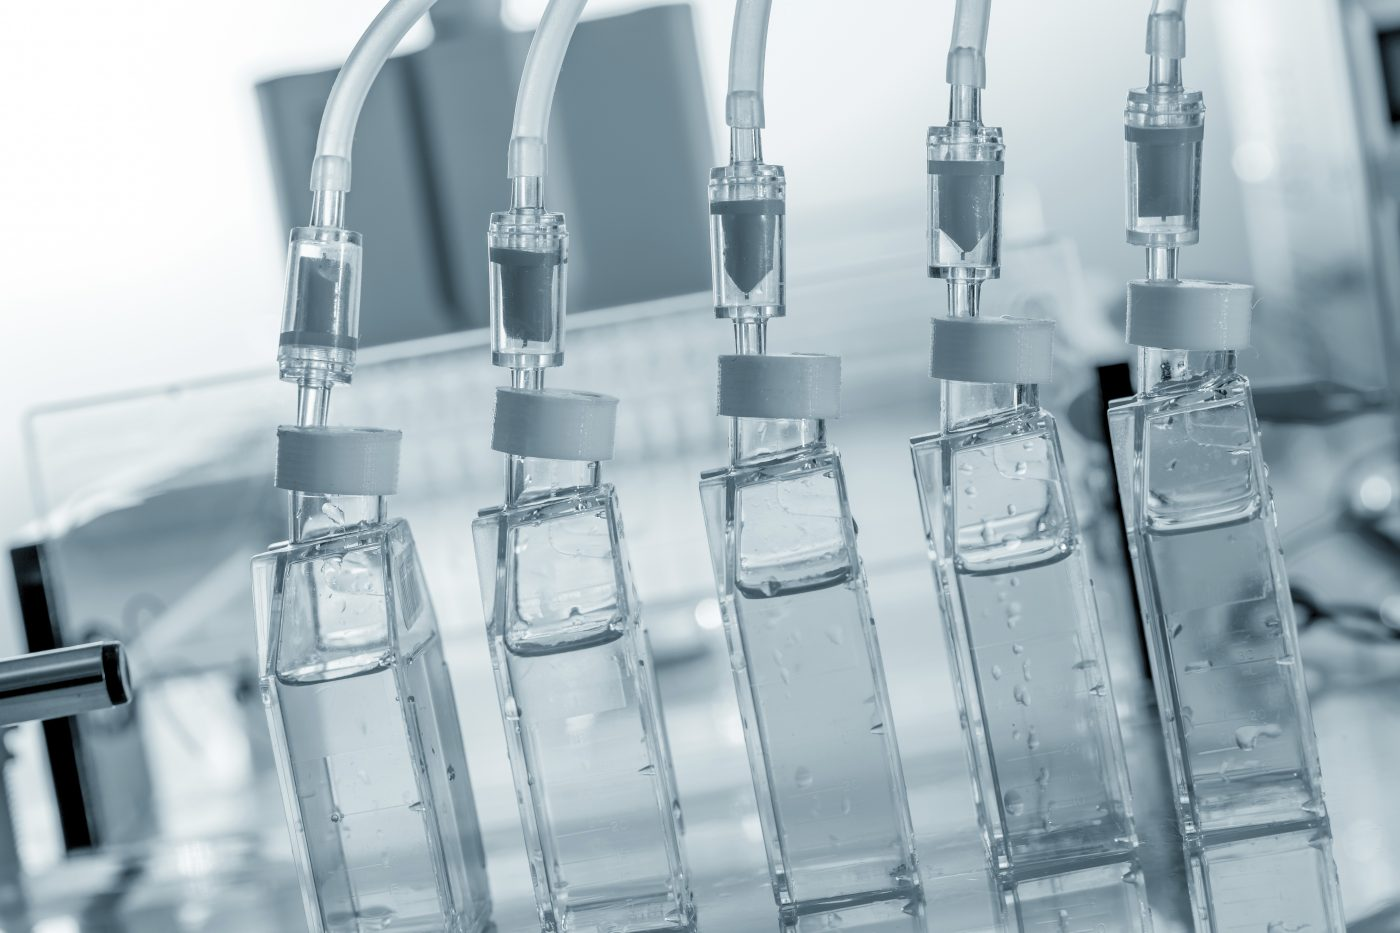 Overview of Scale-Down Screening Models for Cell Culture